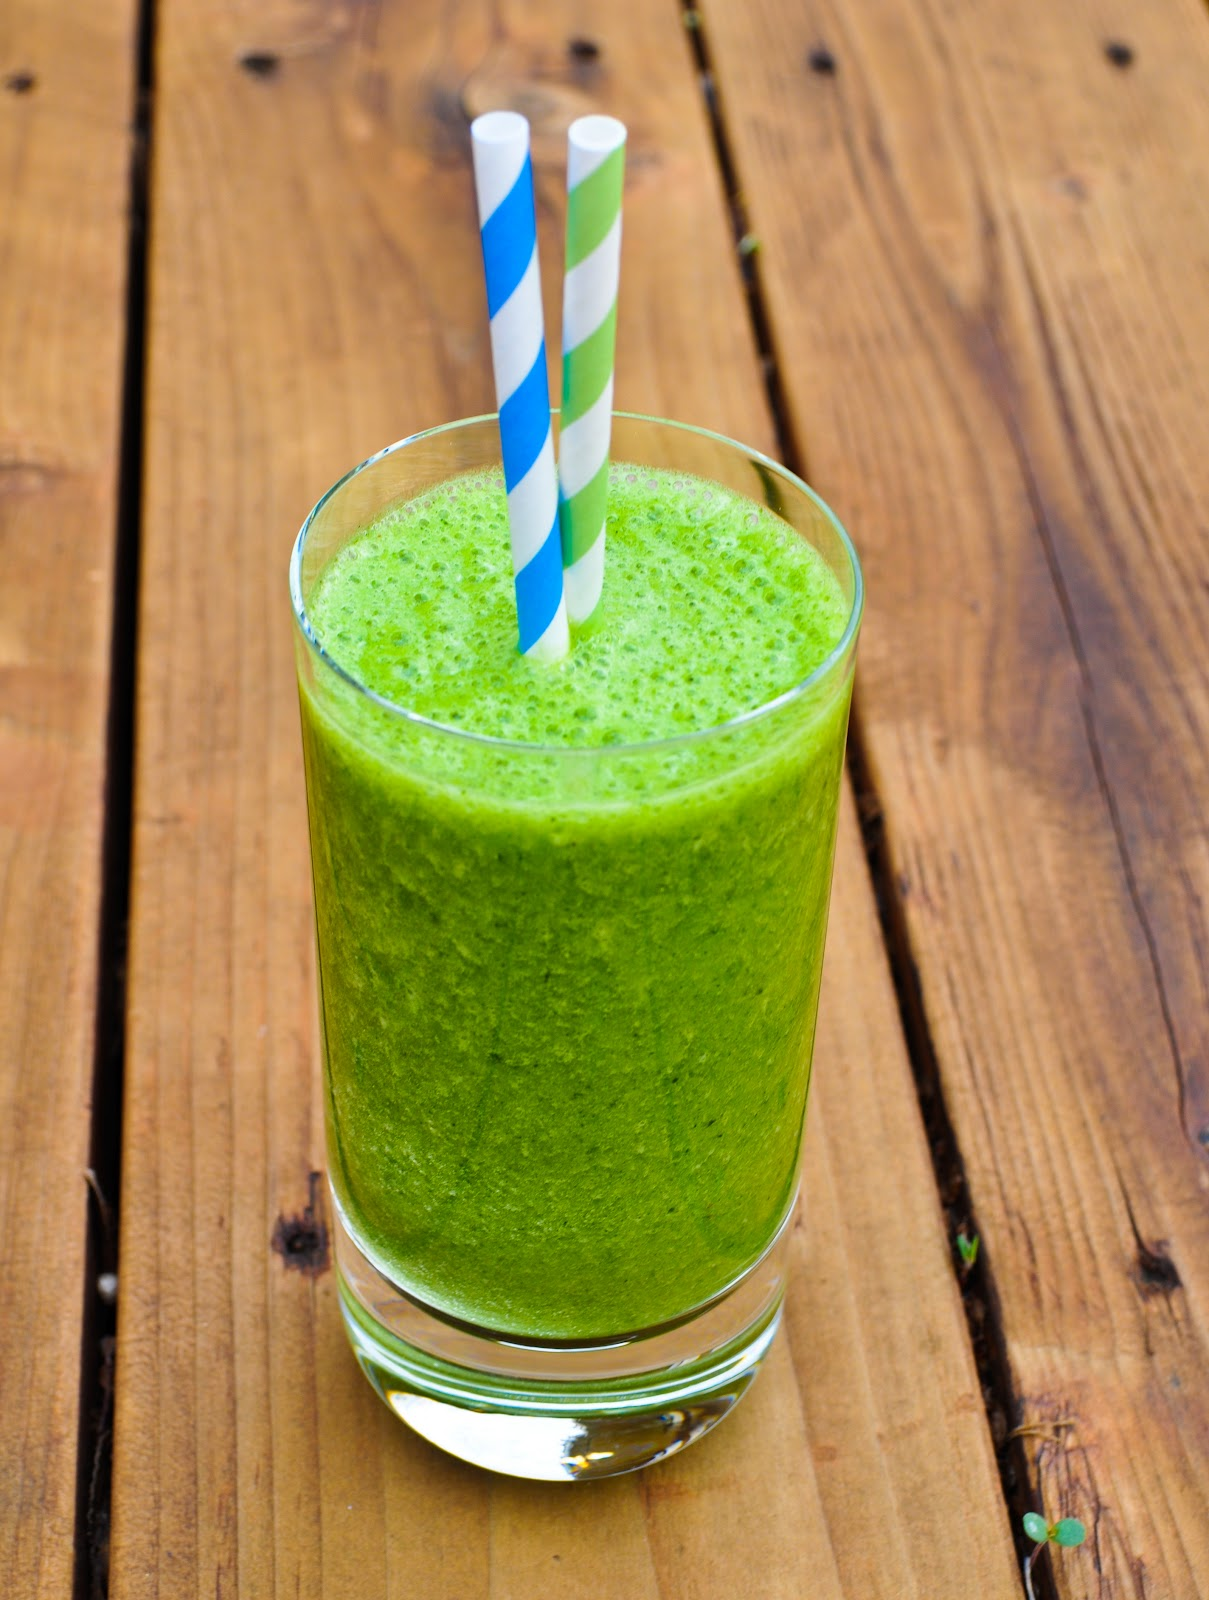 27. Kale & Pineapple Smoothie